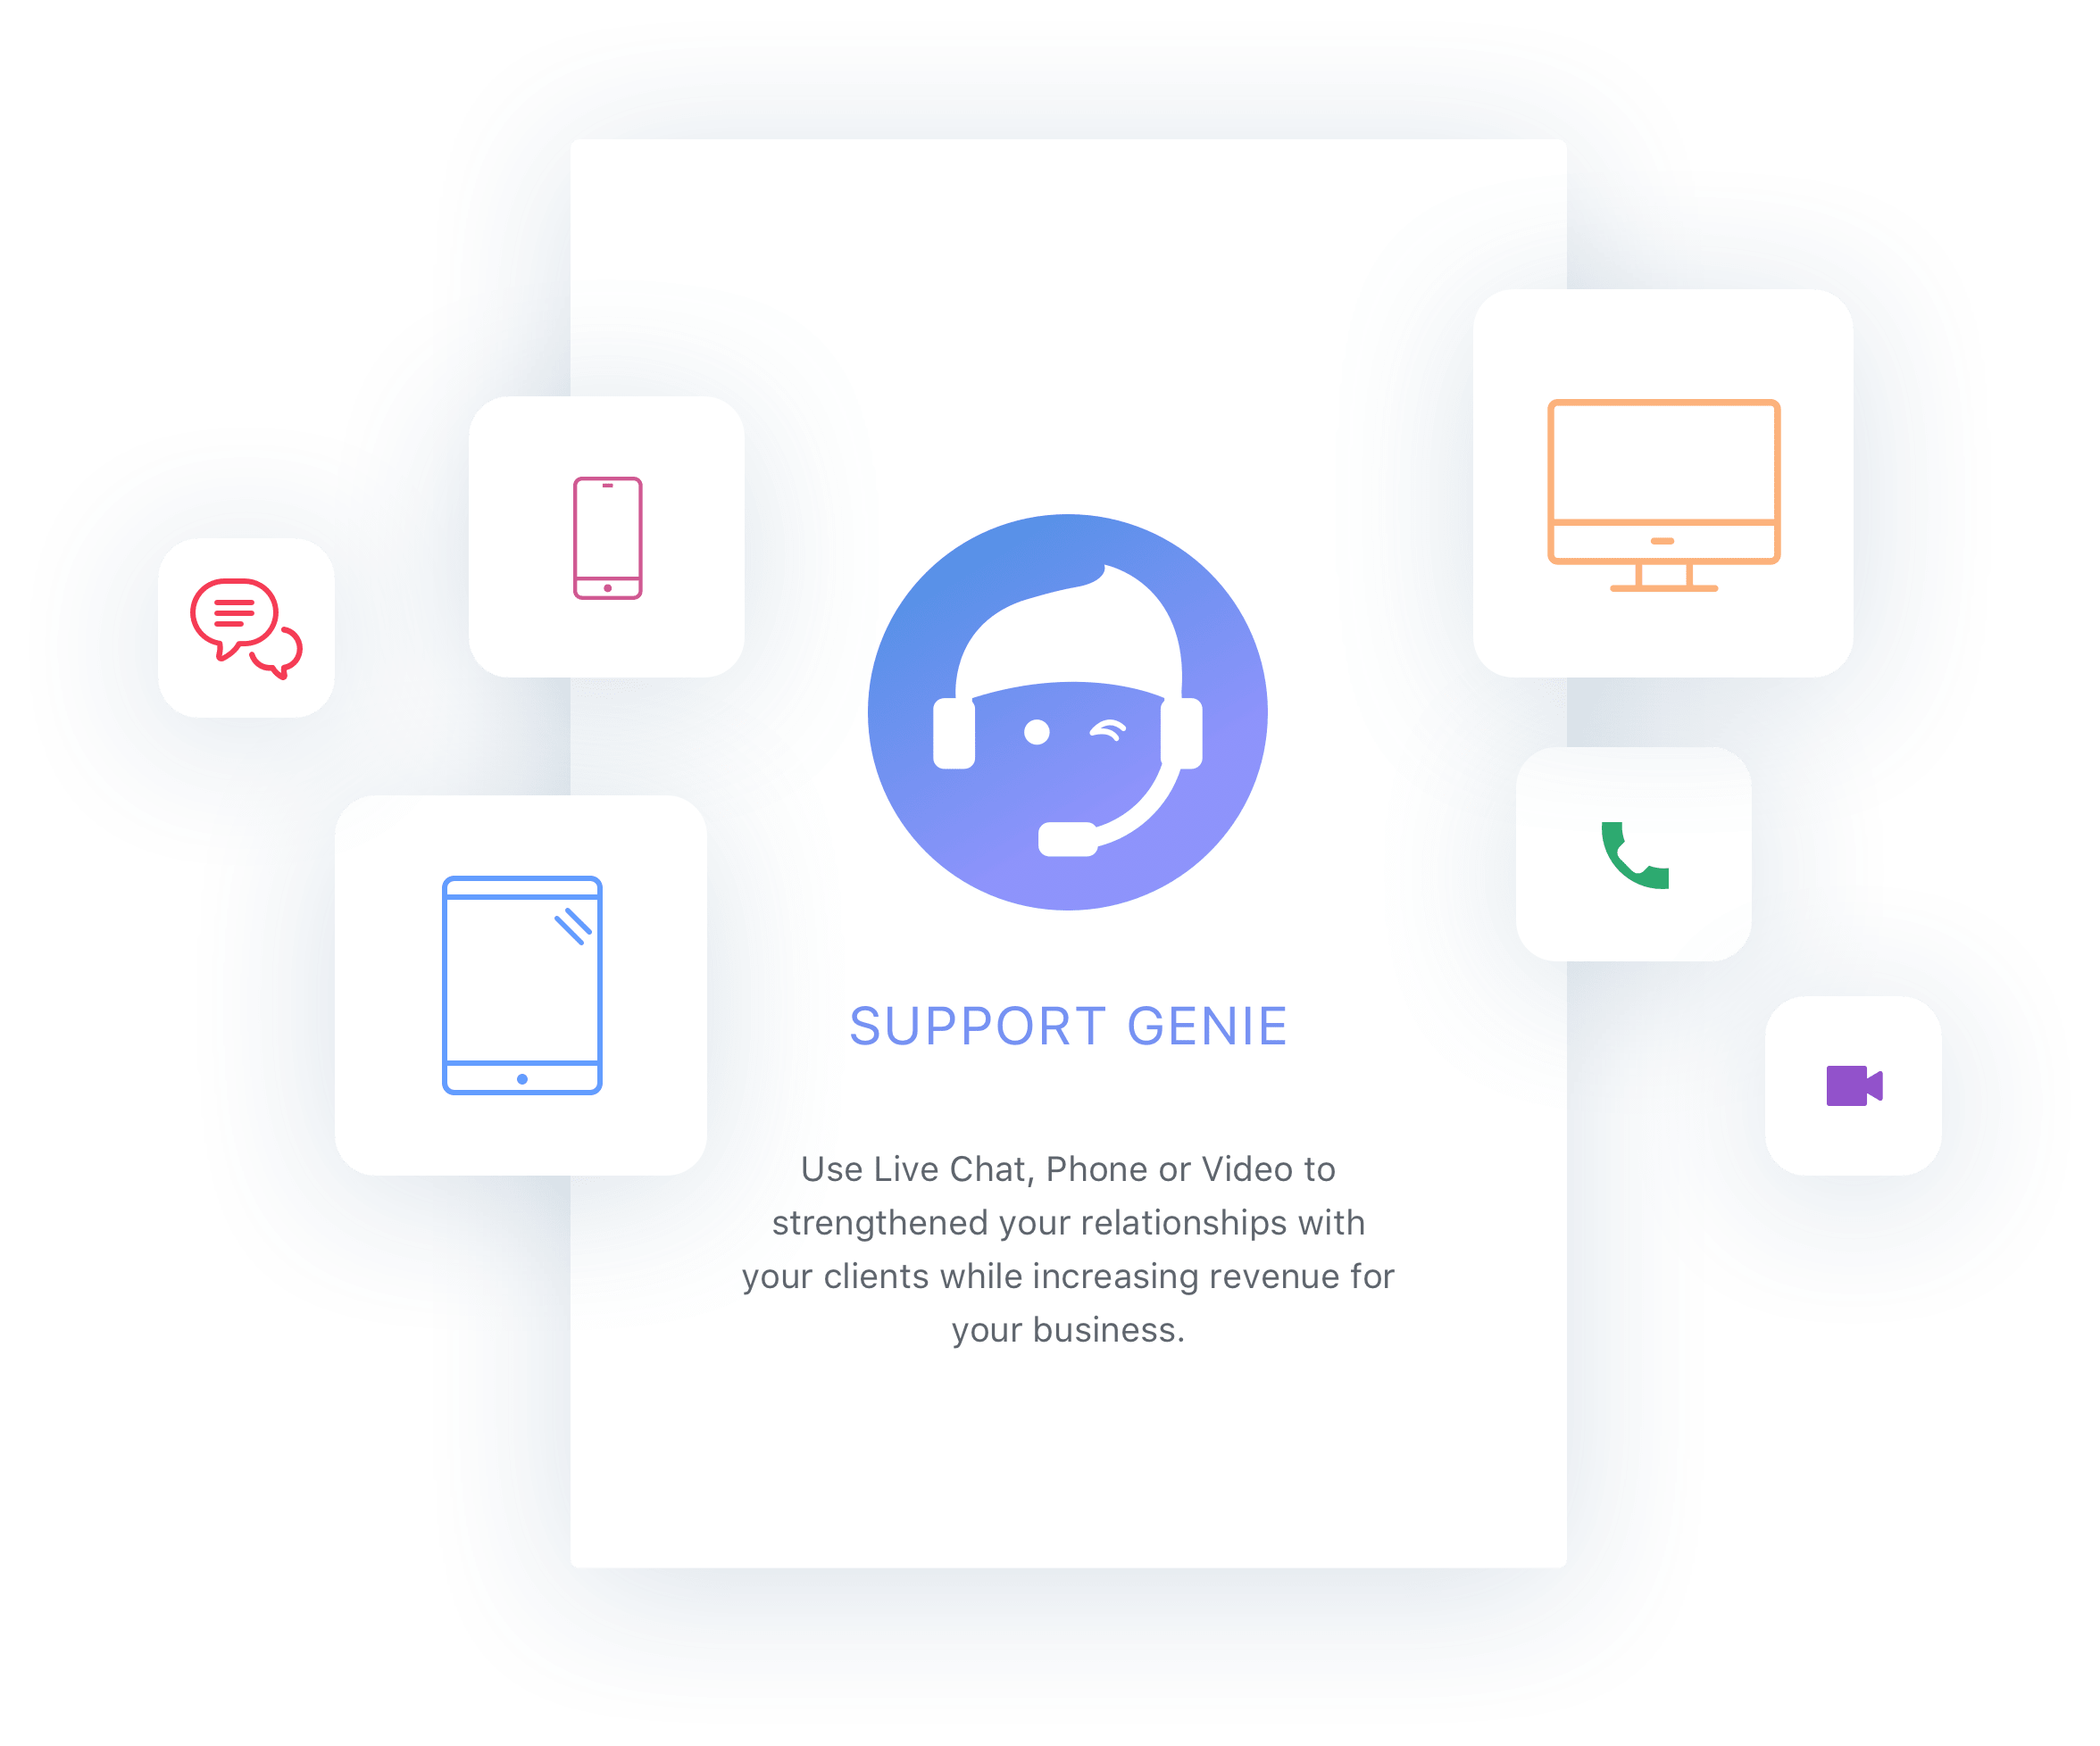 Support Genie Live Chat, Phone, Video to strengthen relationships while increasing revenue.